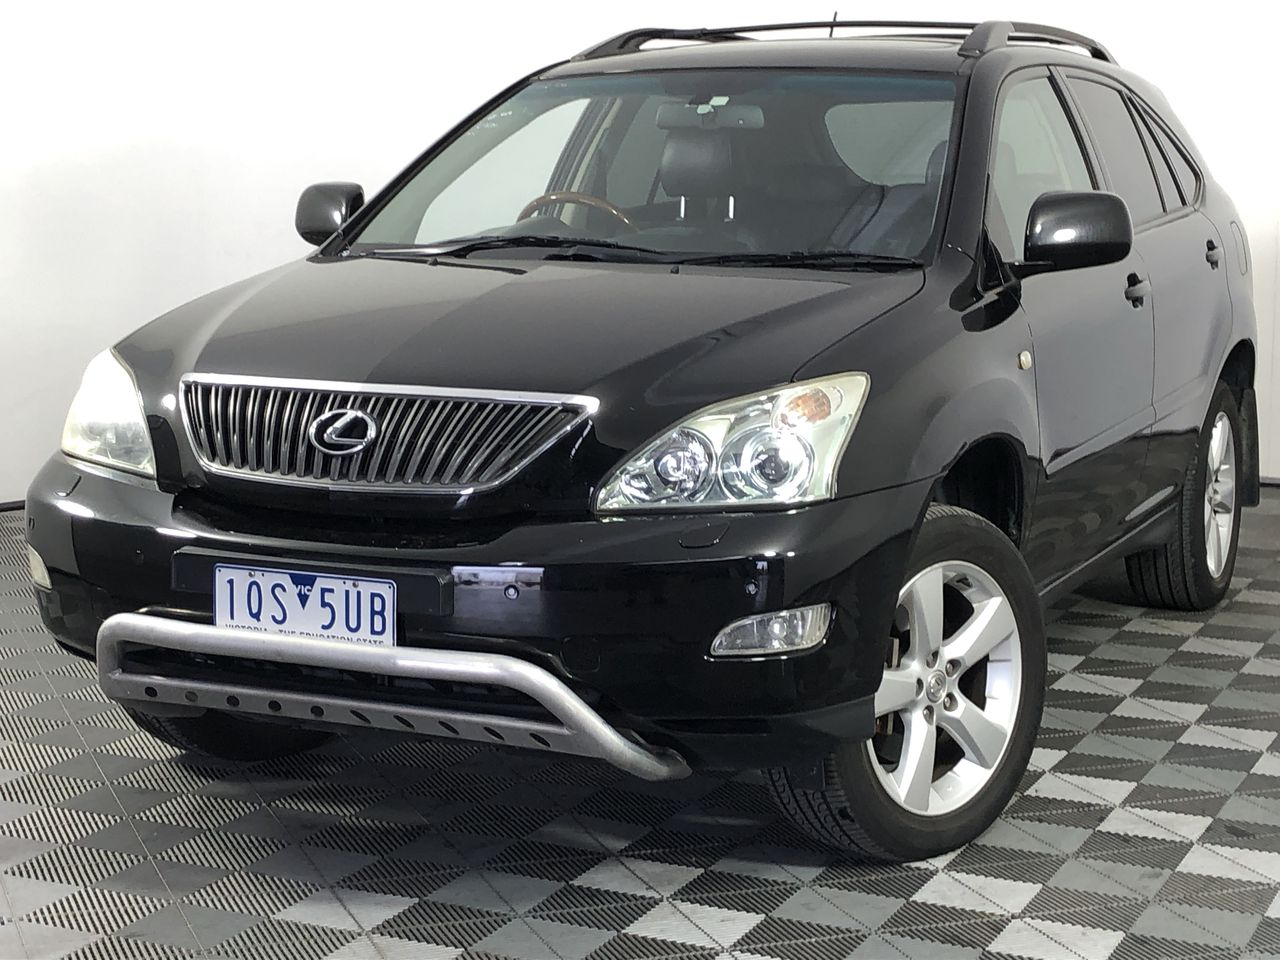 2006 Lexus RX350 Sports Luxury GSU35R Automatic Wagon